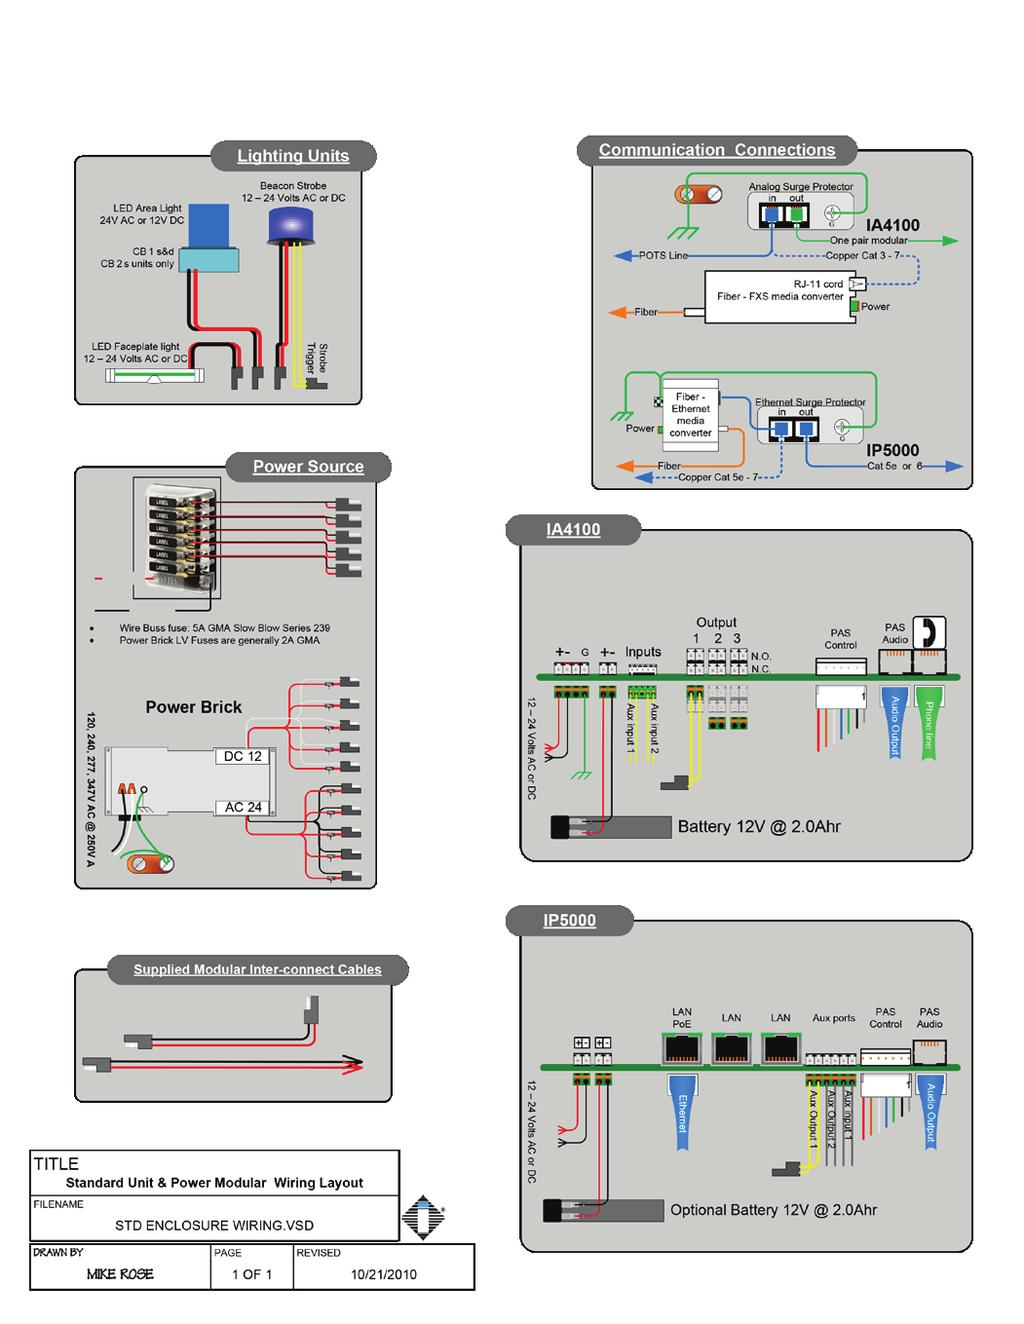 Cb 1 Series Administrator Guide Installation Configuration 120 240 Volt Wiring Diagram 12 Lines 33 E And S 24v Or 120v Multi Tap